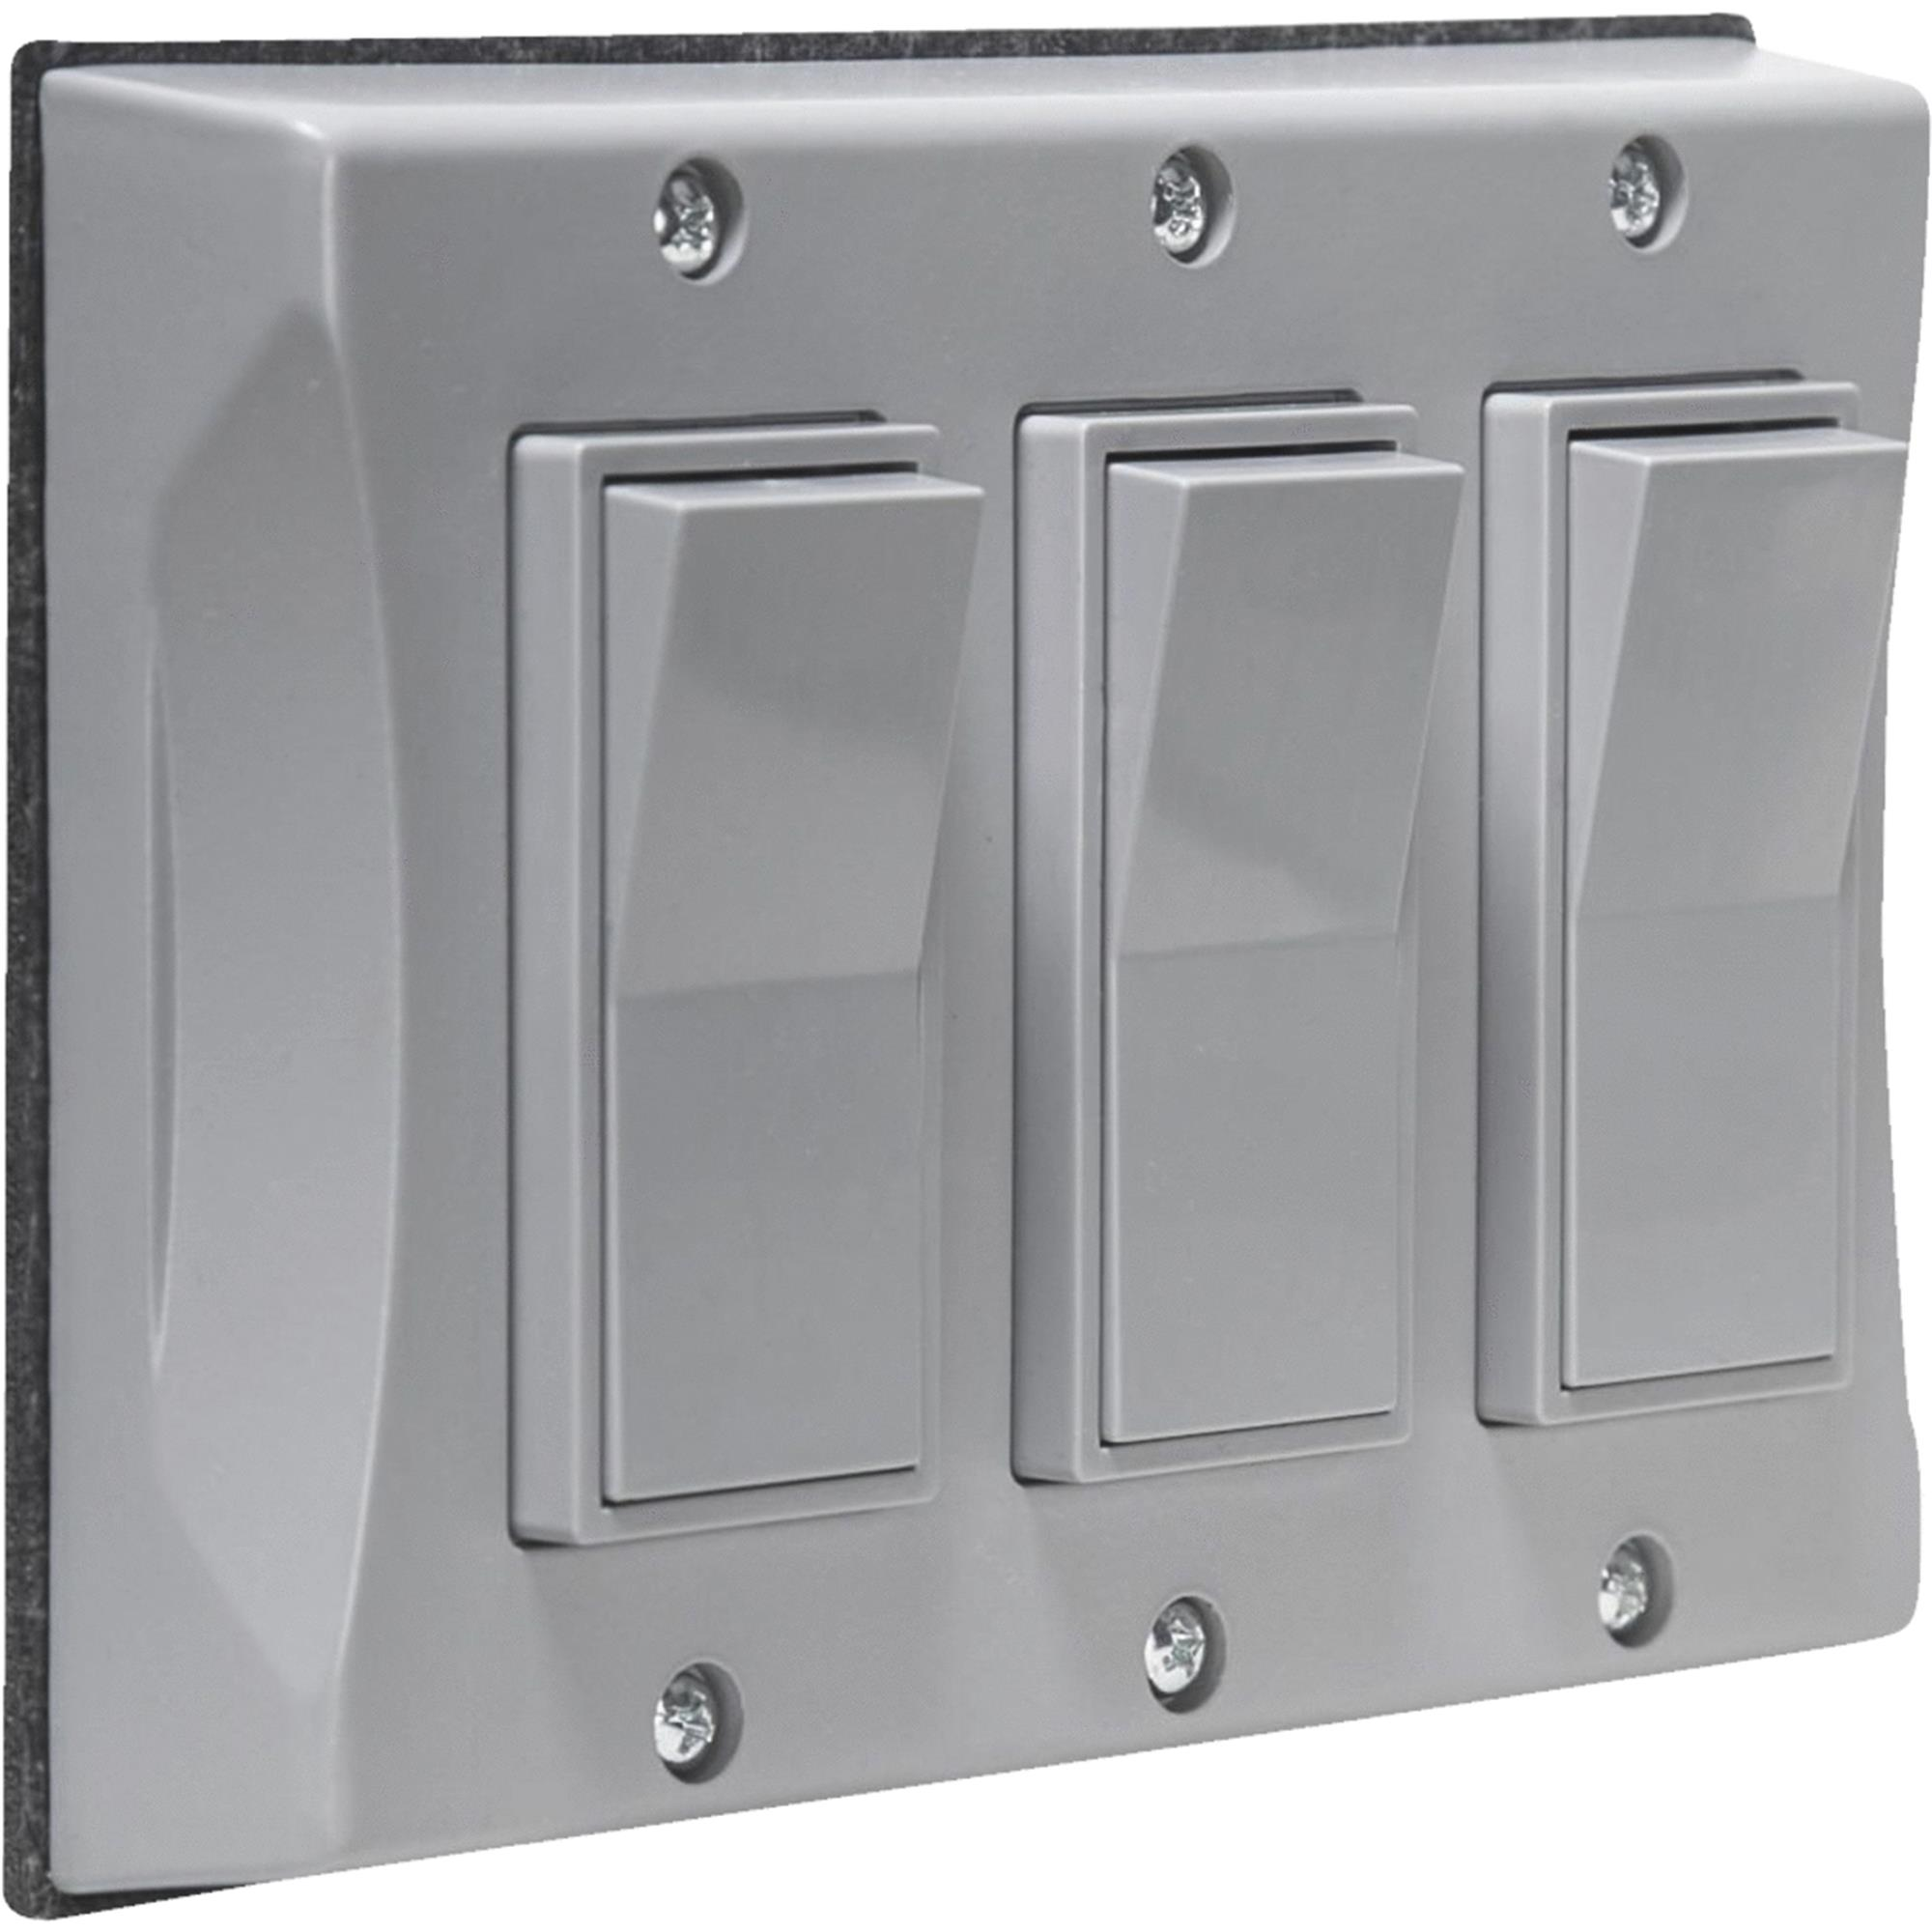 Hubbell Taymac 5129 0 3 Gang Weatherproof Decorator Vertical Cover